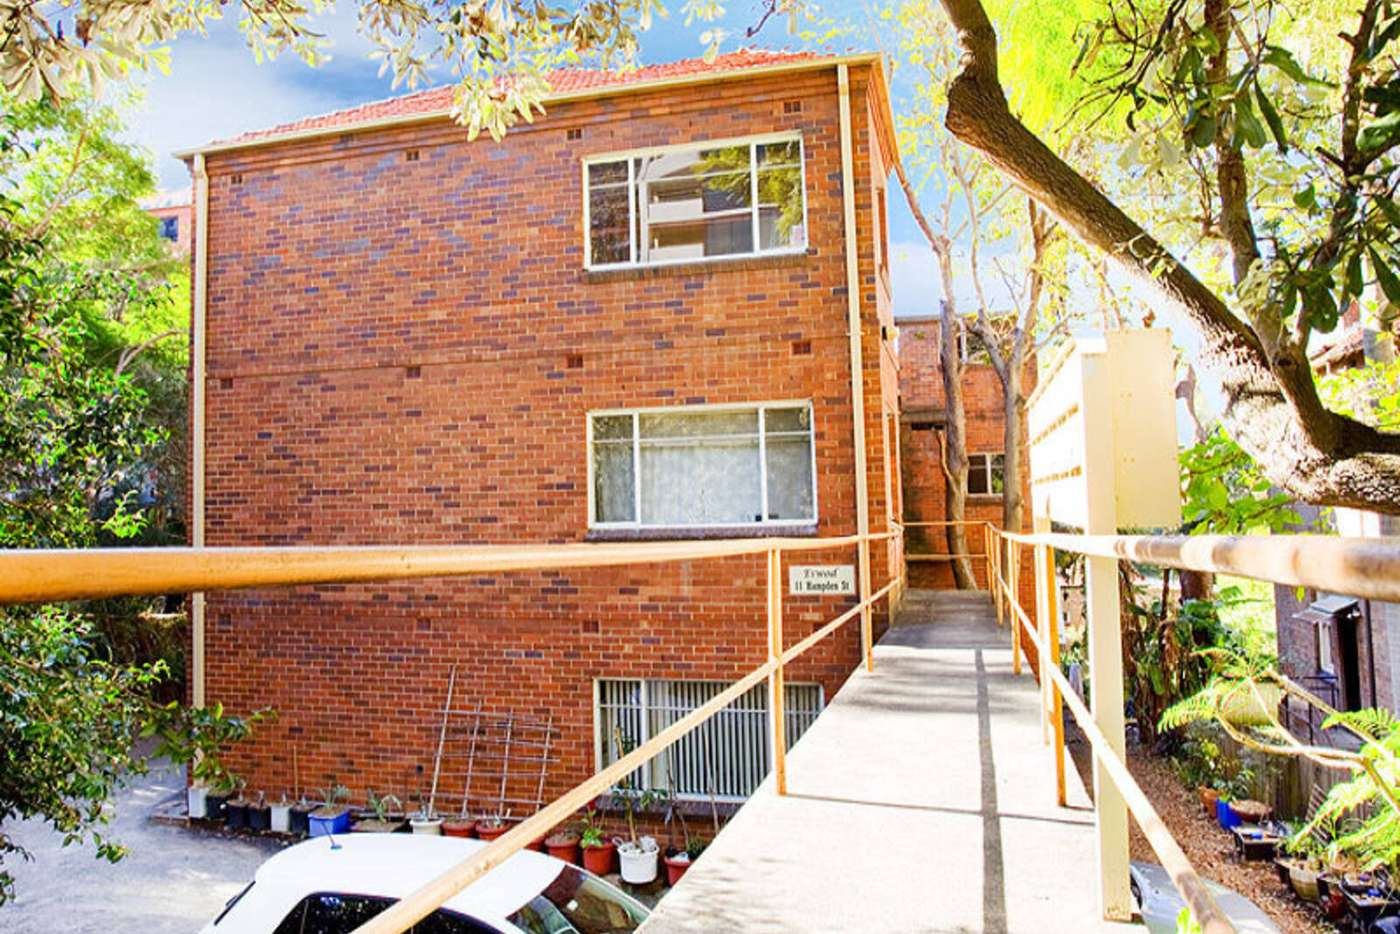 Main view of Homely studio listing, 2/11 Hampden Street, North Sydney NSW 2060